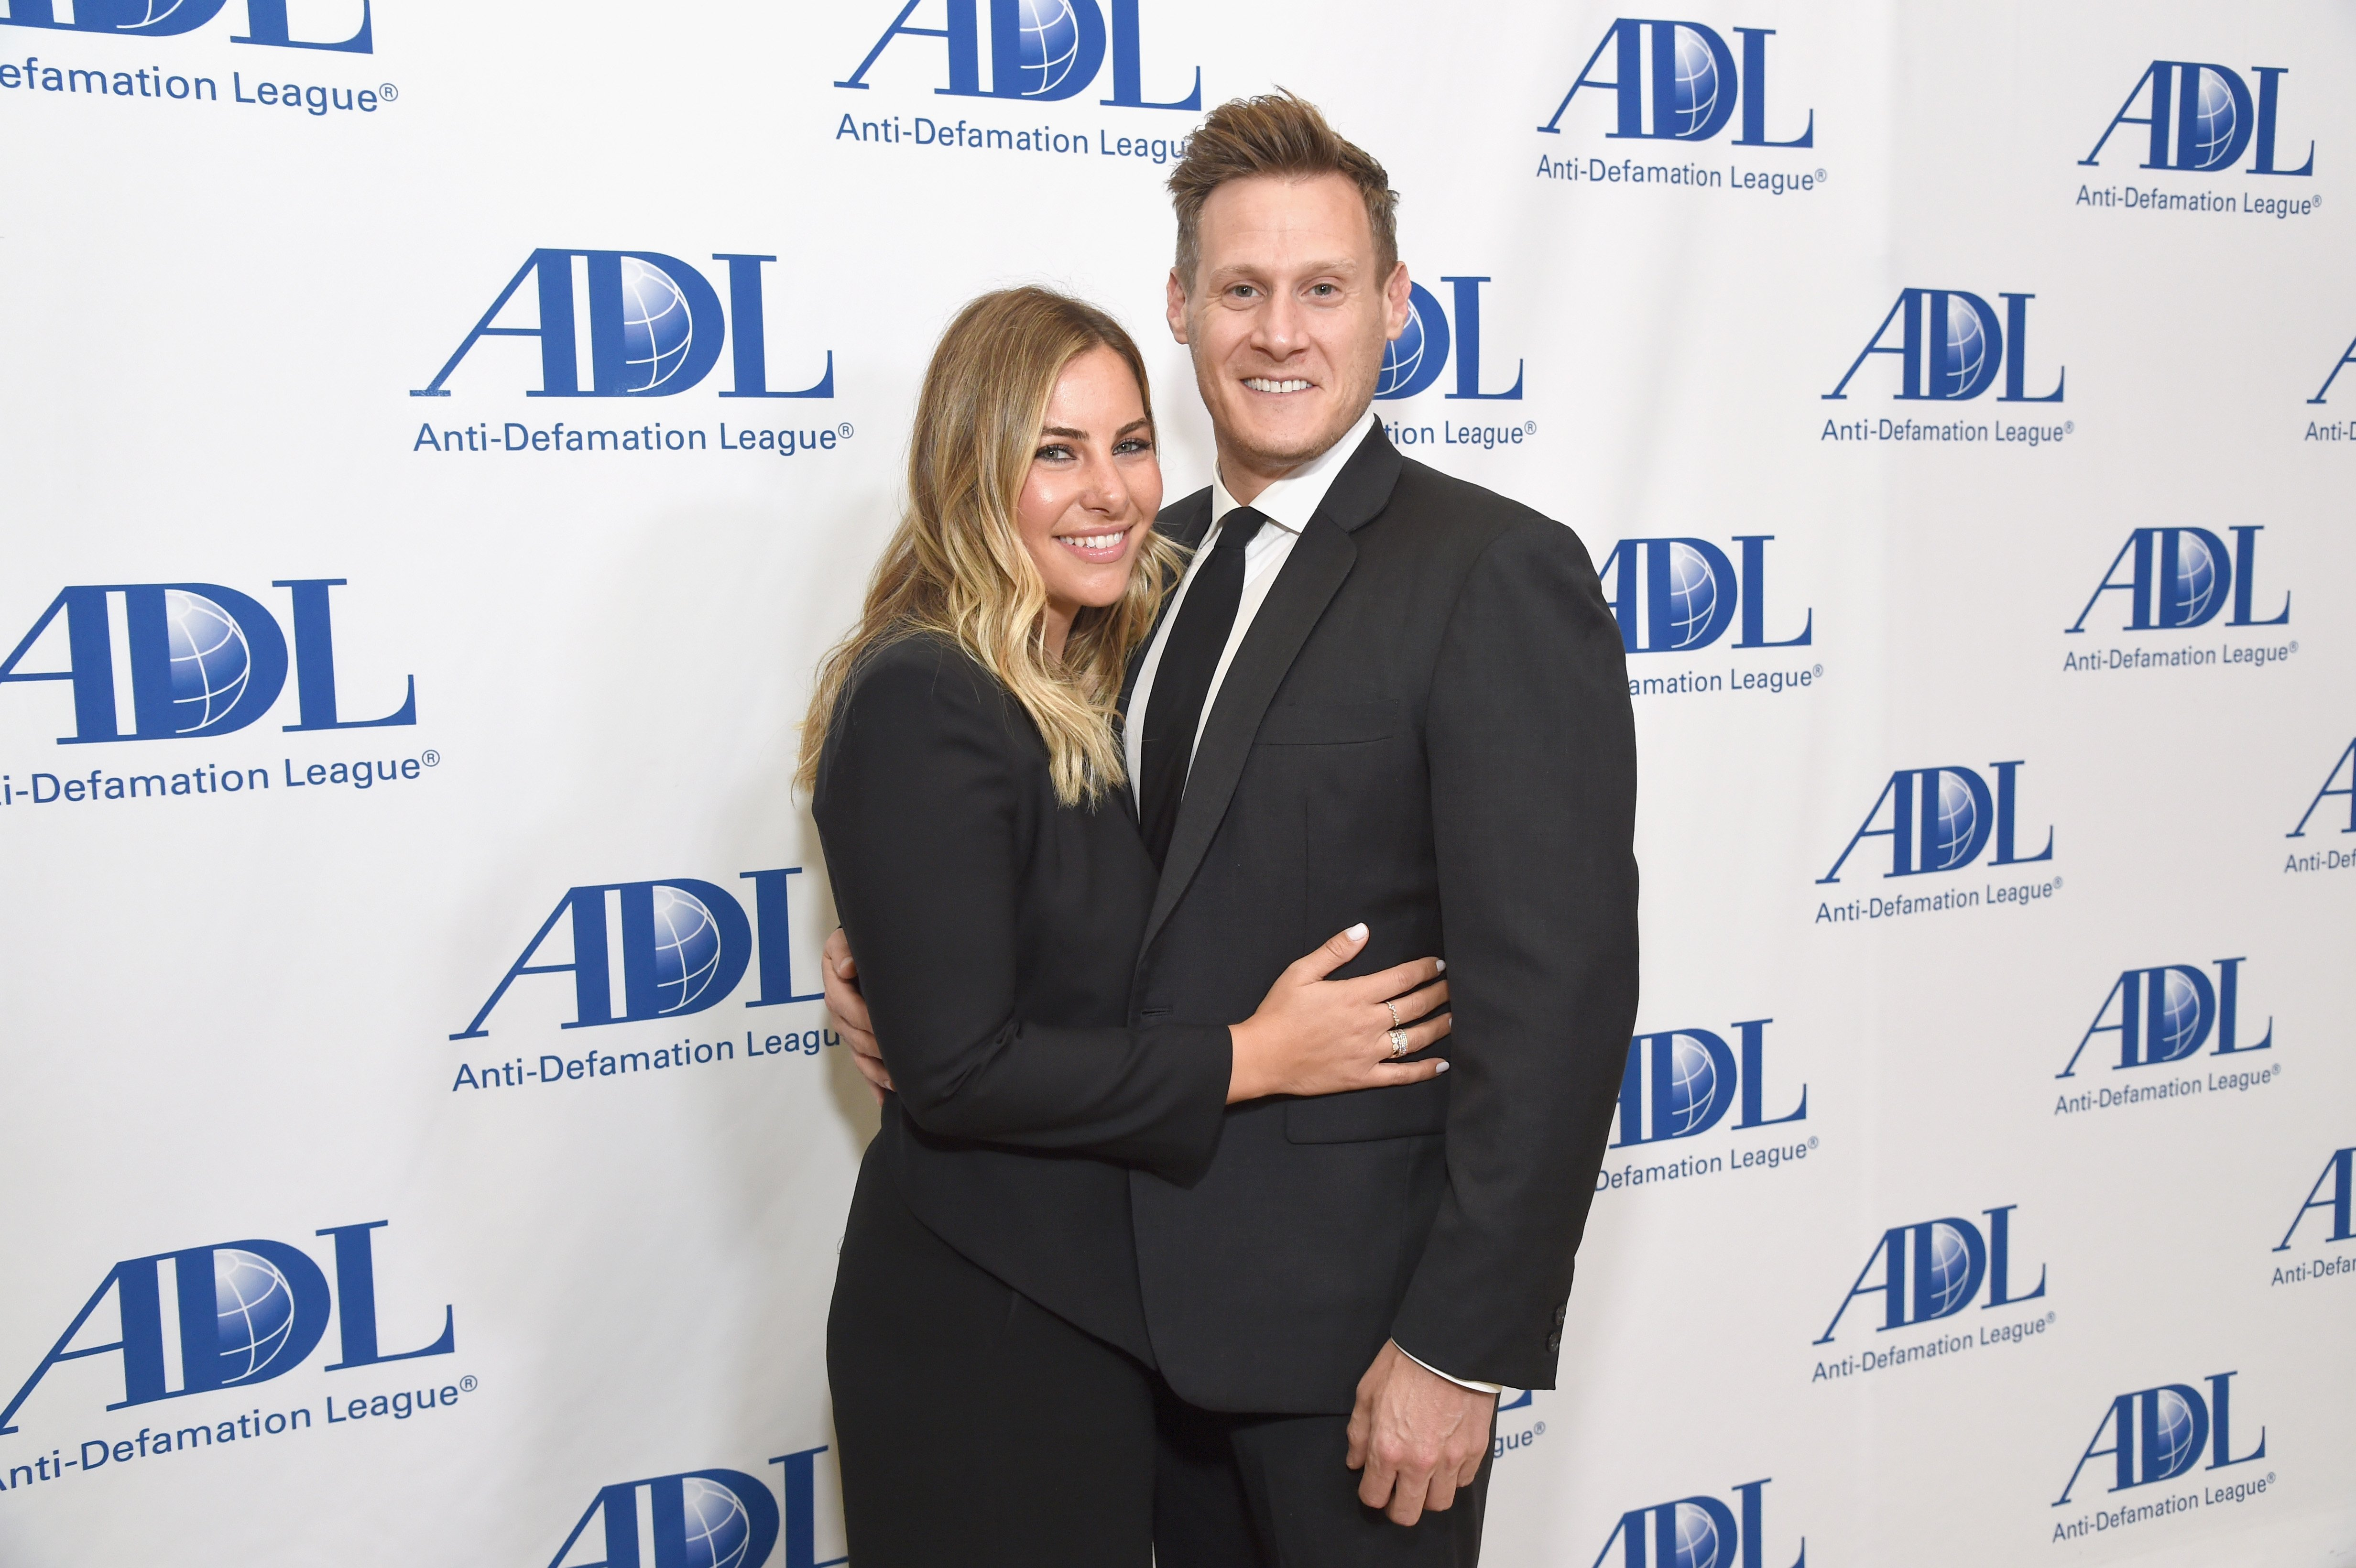 Tracey Kurland und Trevor Engelson nehmen am 17. April 2018 am Abendessen der Anti-Defamation League Entertainment Industry im Beverly Hilton Hotel in Beverly Hills, Kalifornien, teil. | Quelle: Getty Images